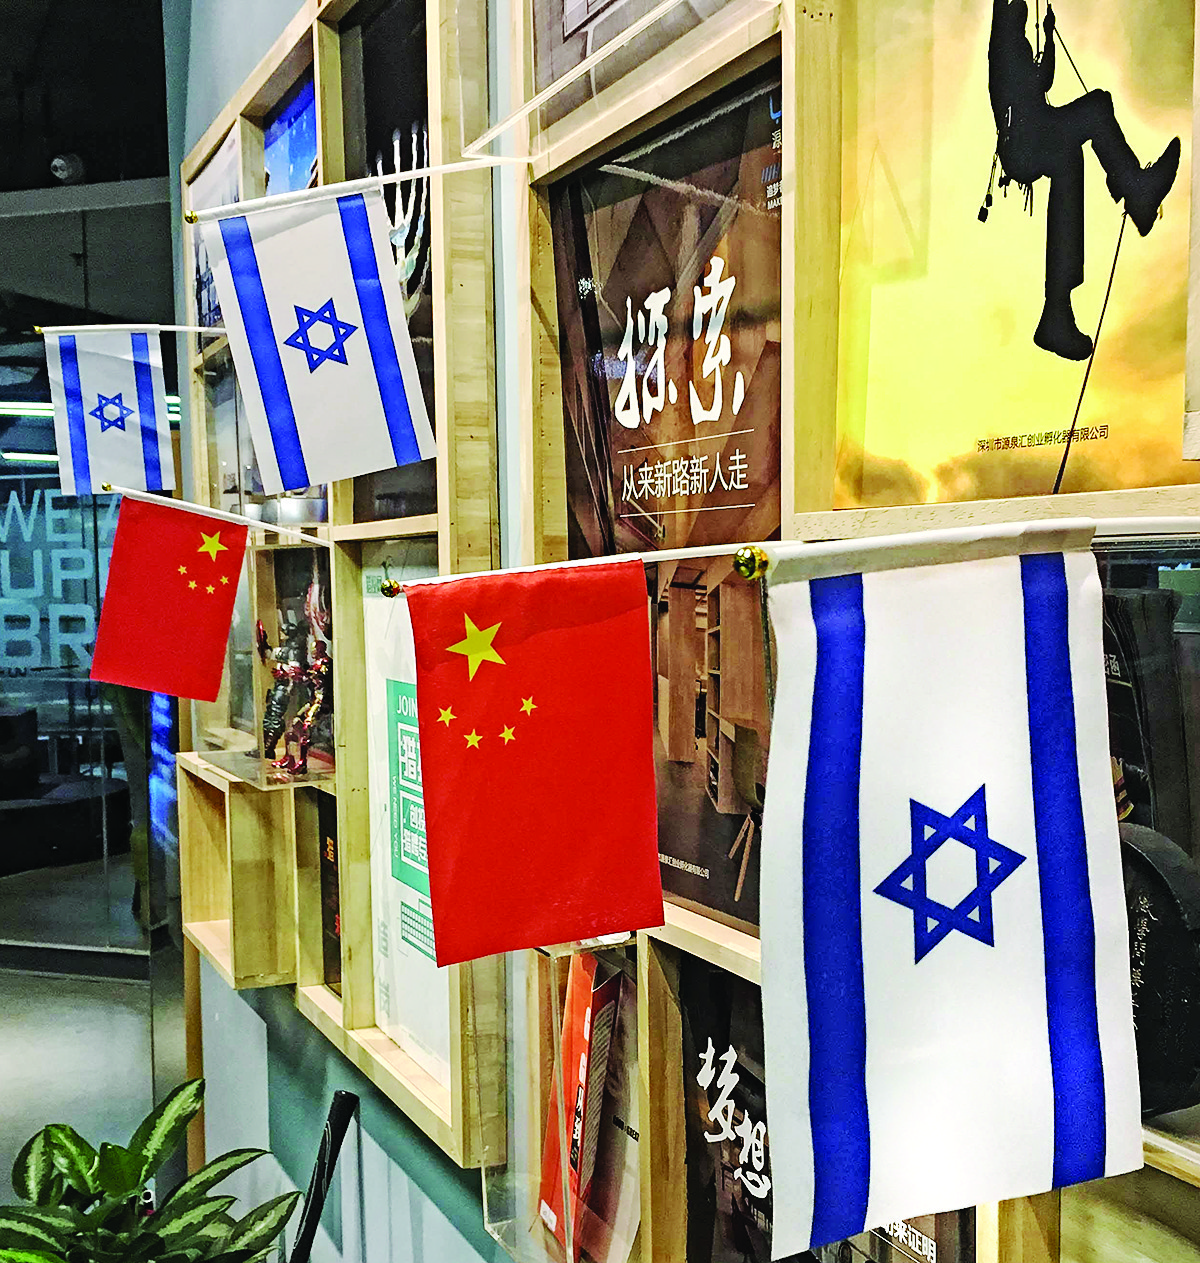 Israeli and Chinese flags at the event venue.